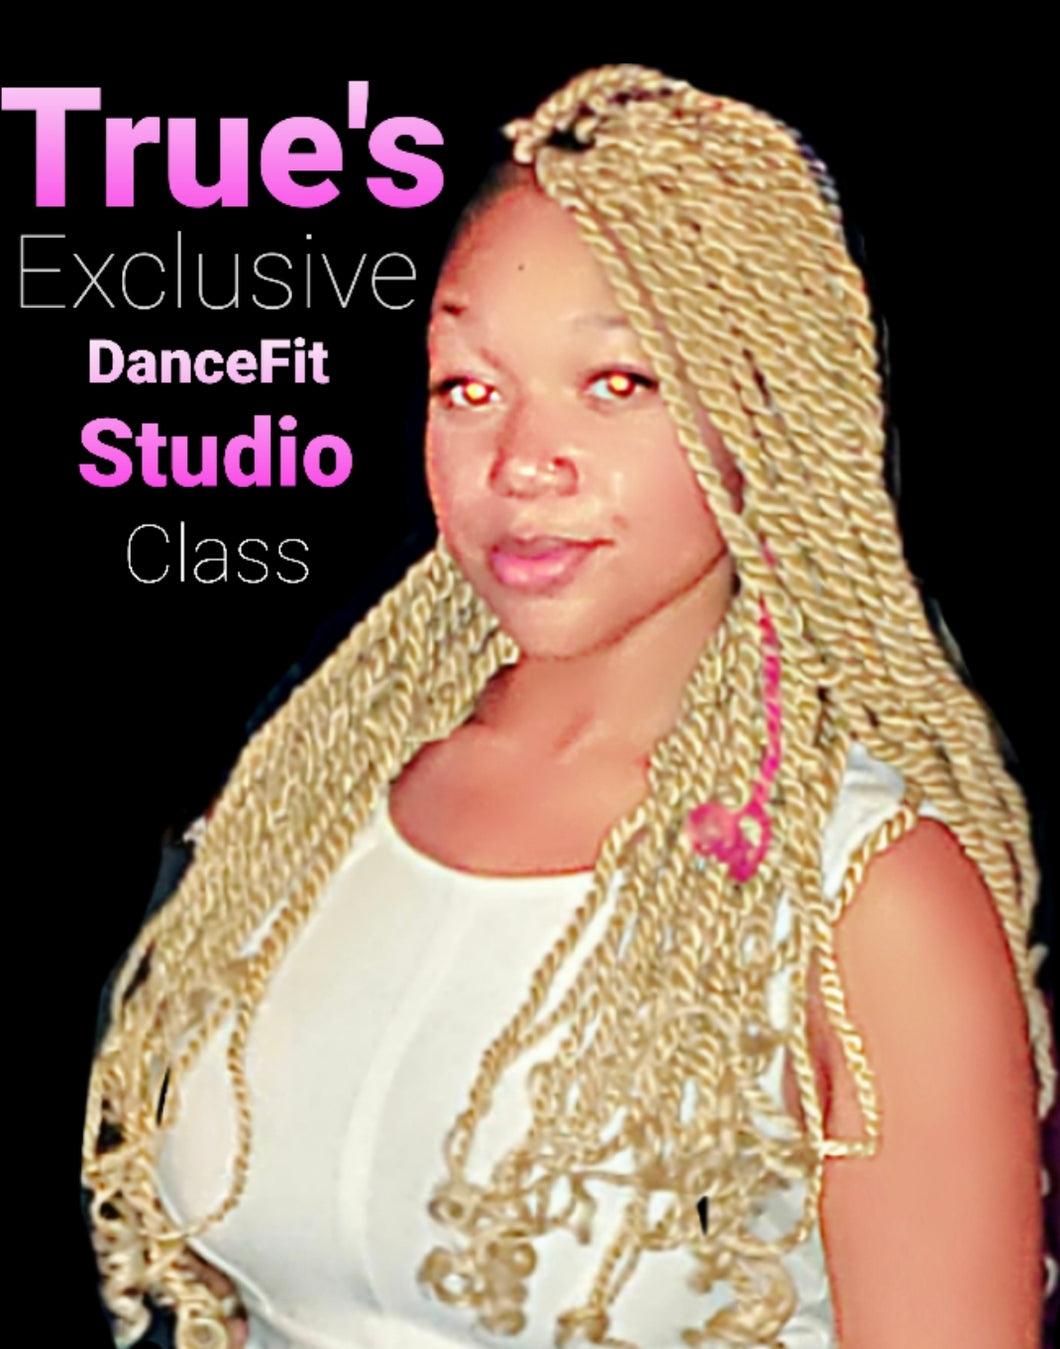 True's Exclusive DanceFit Studio: Live Class